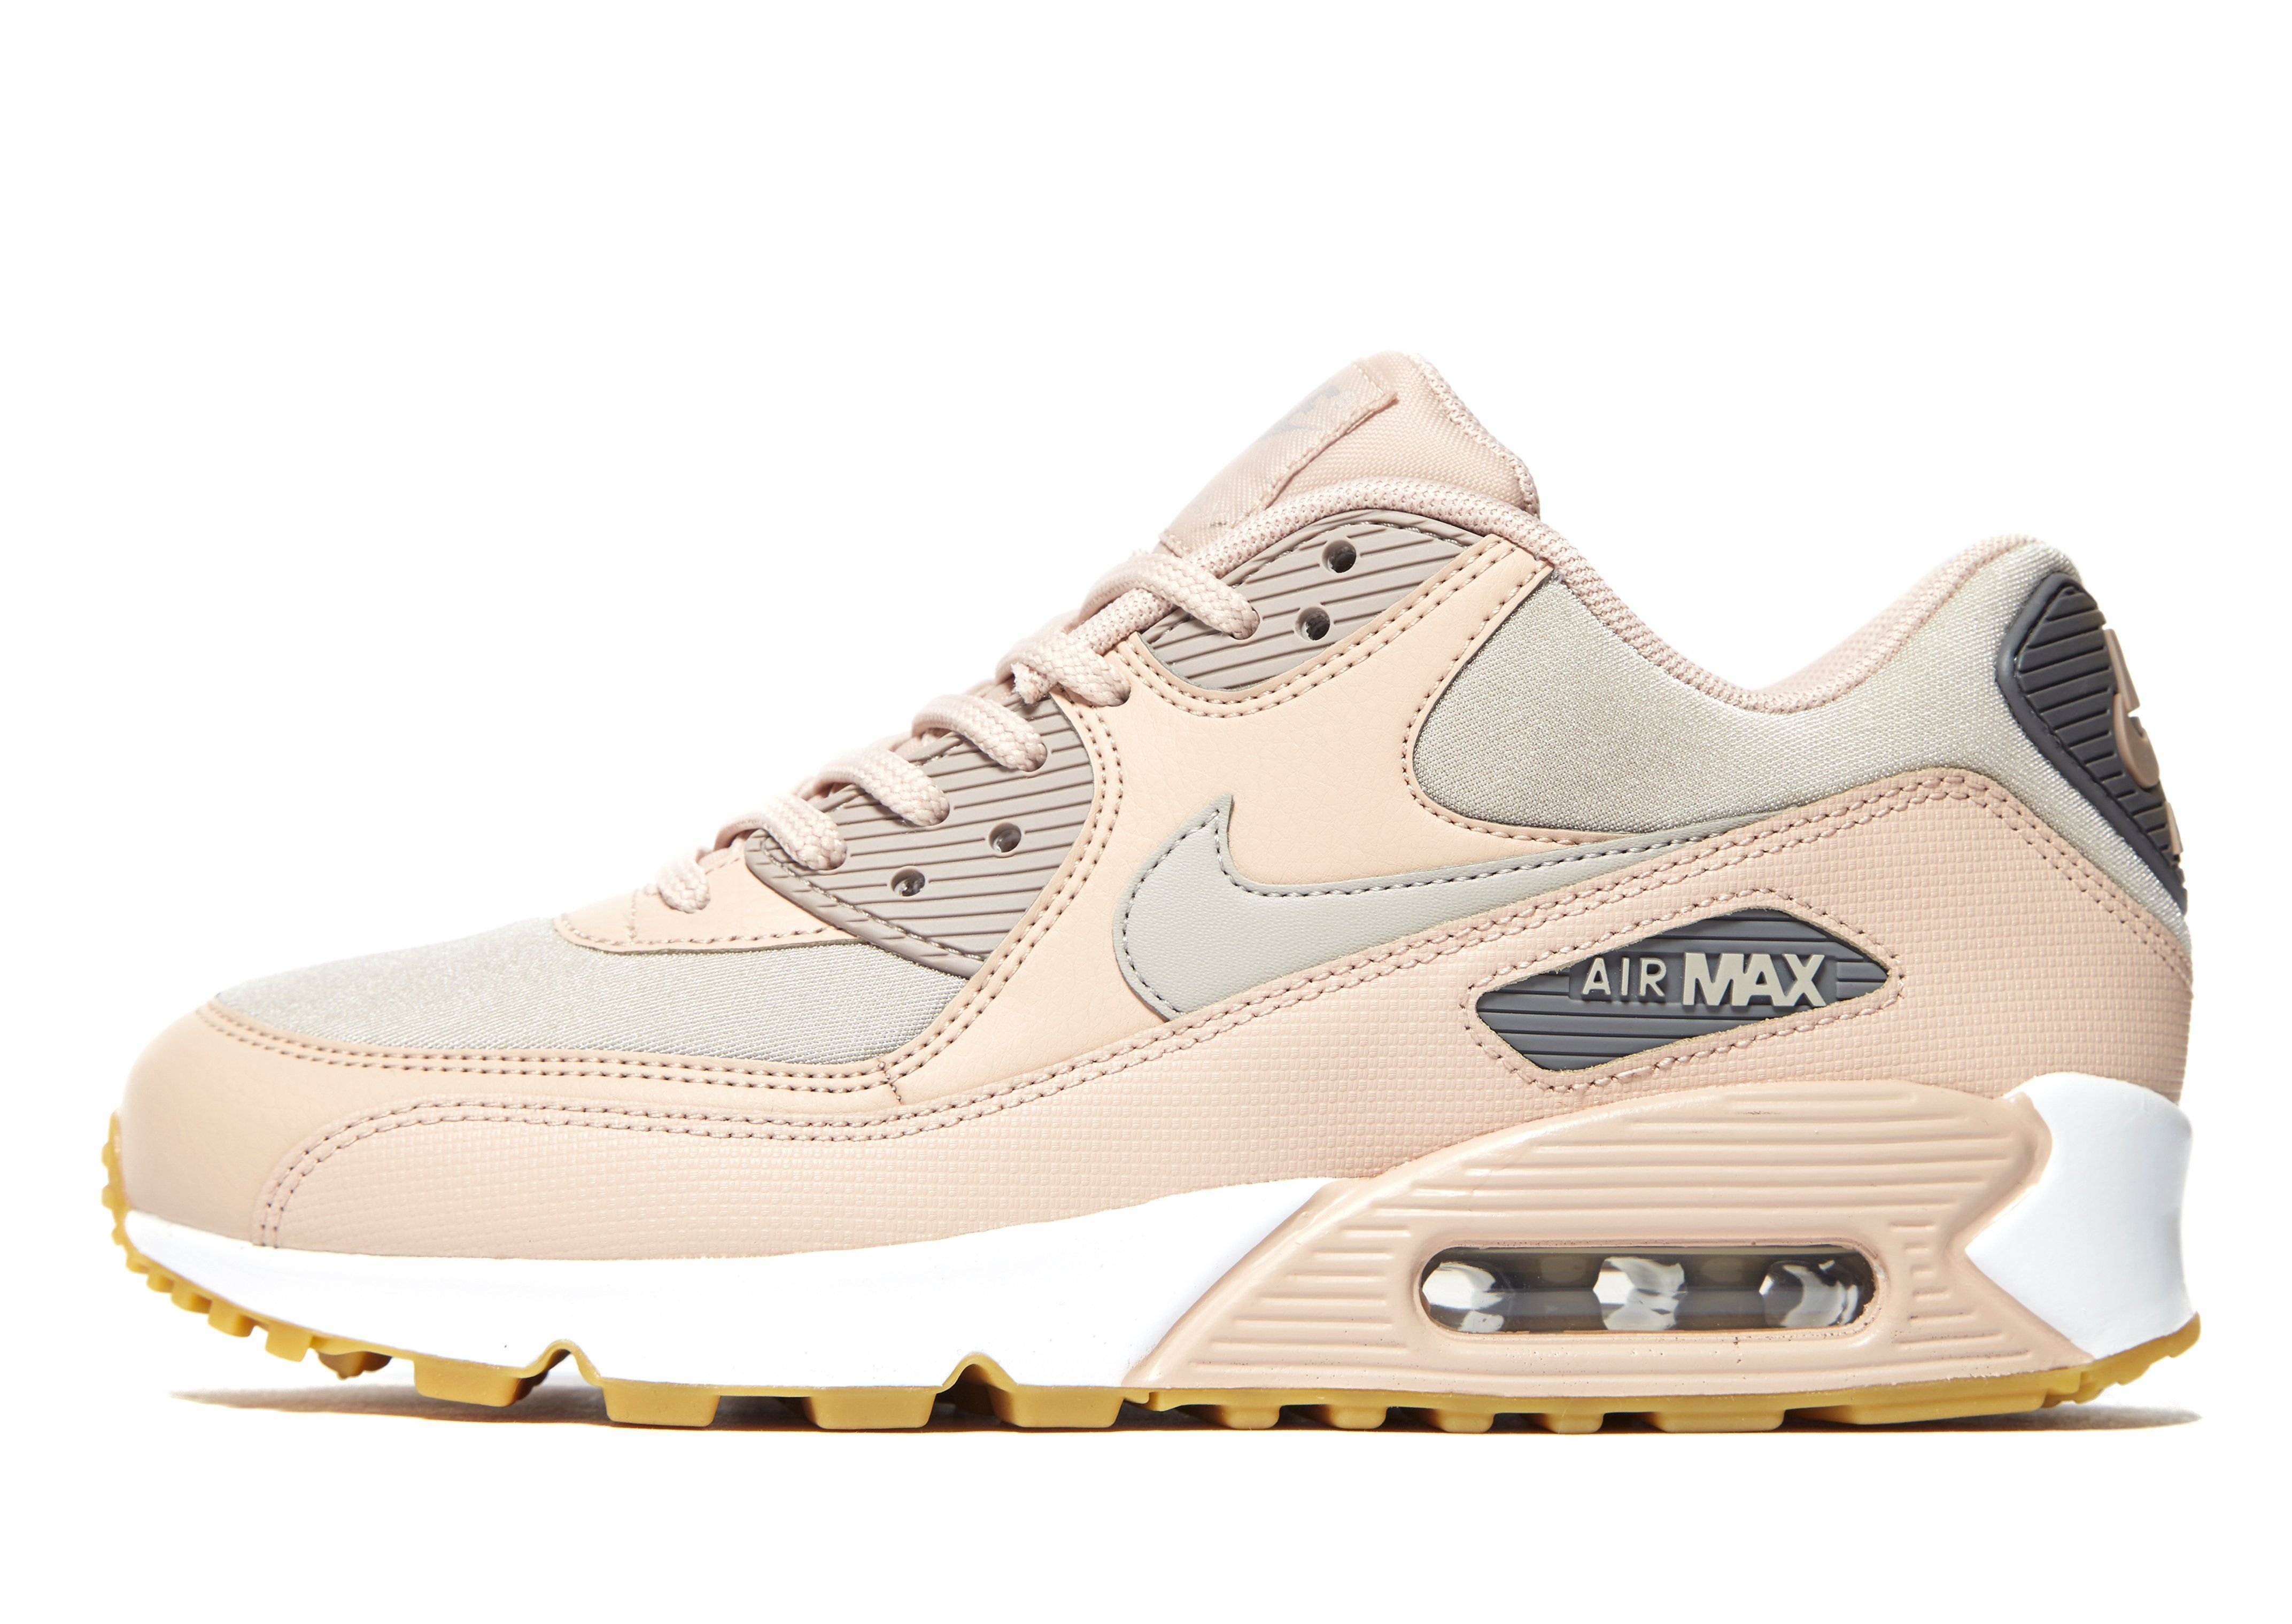 66185e97b01 Nike Air Max 90 Women s - Shop online for Nike Air Max 90 Women s with JD